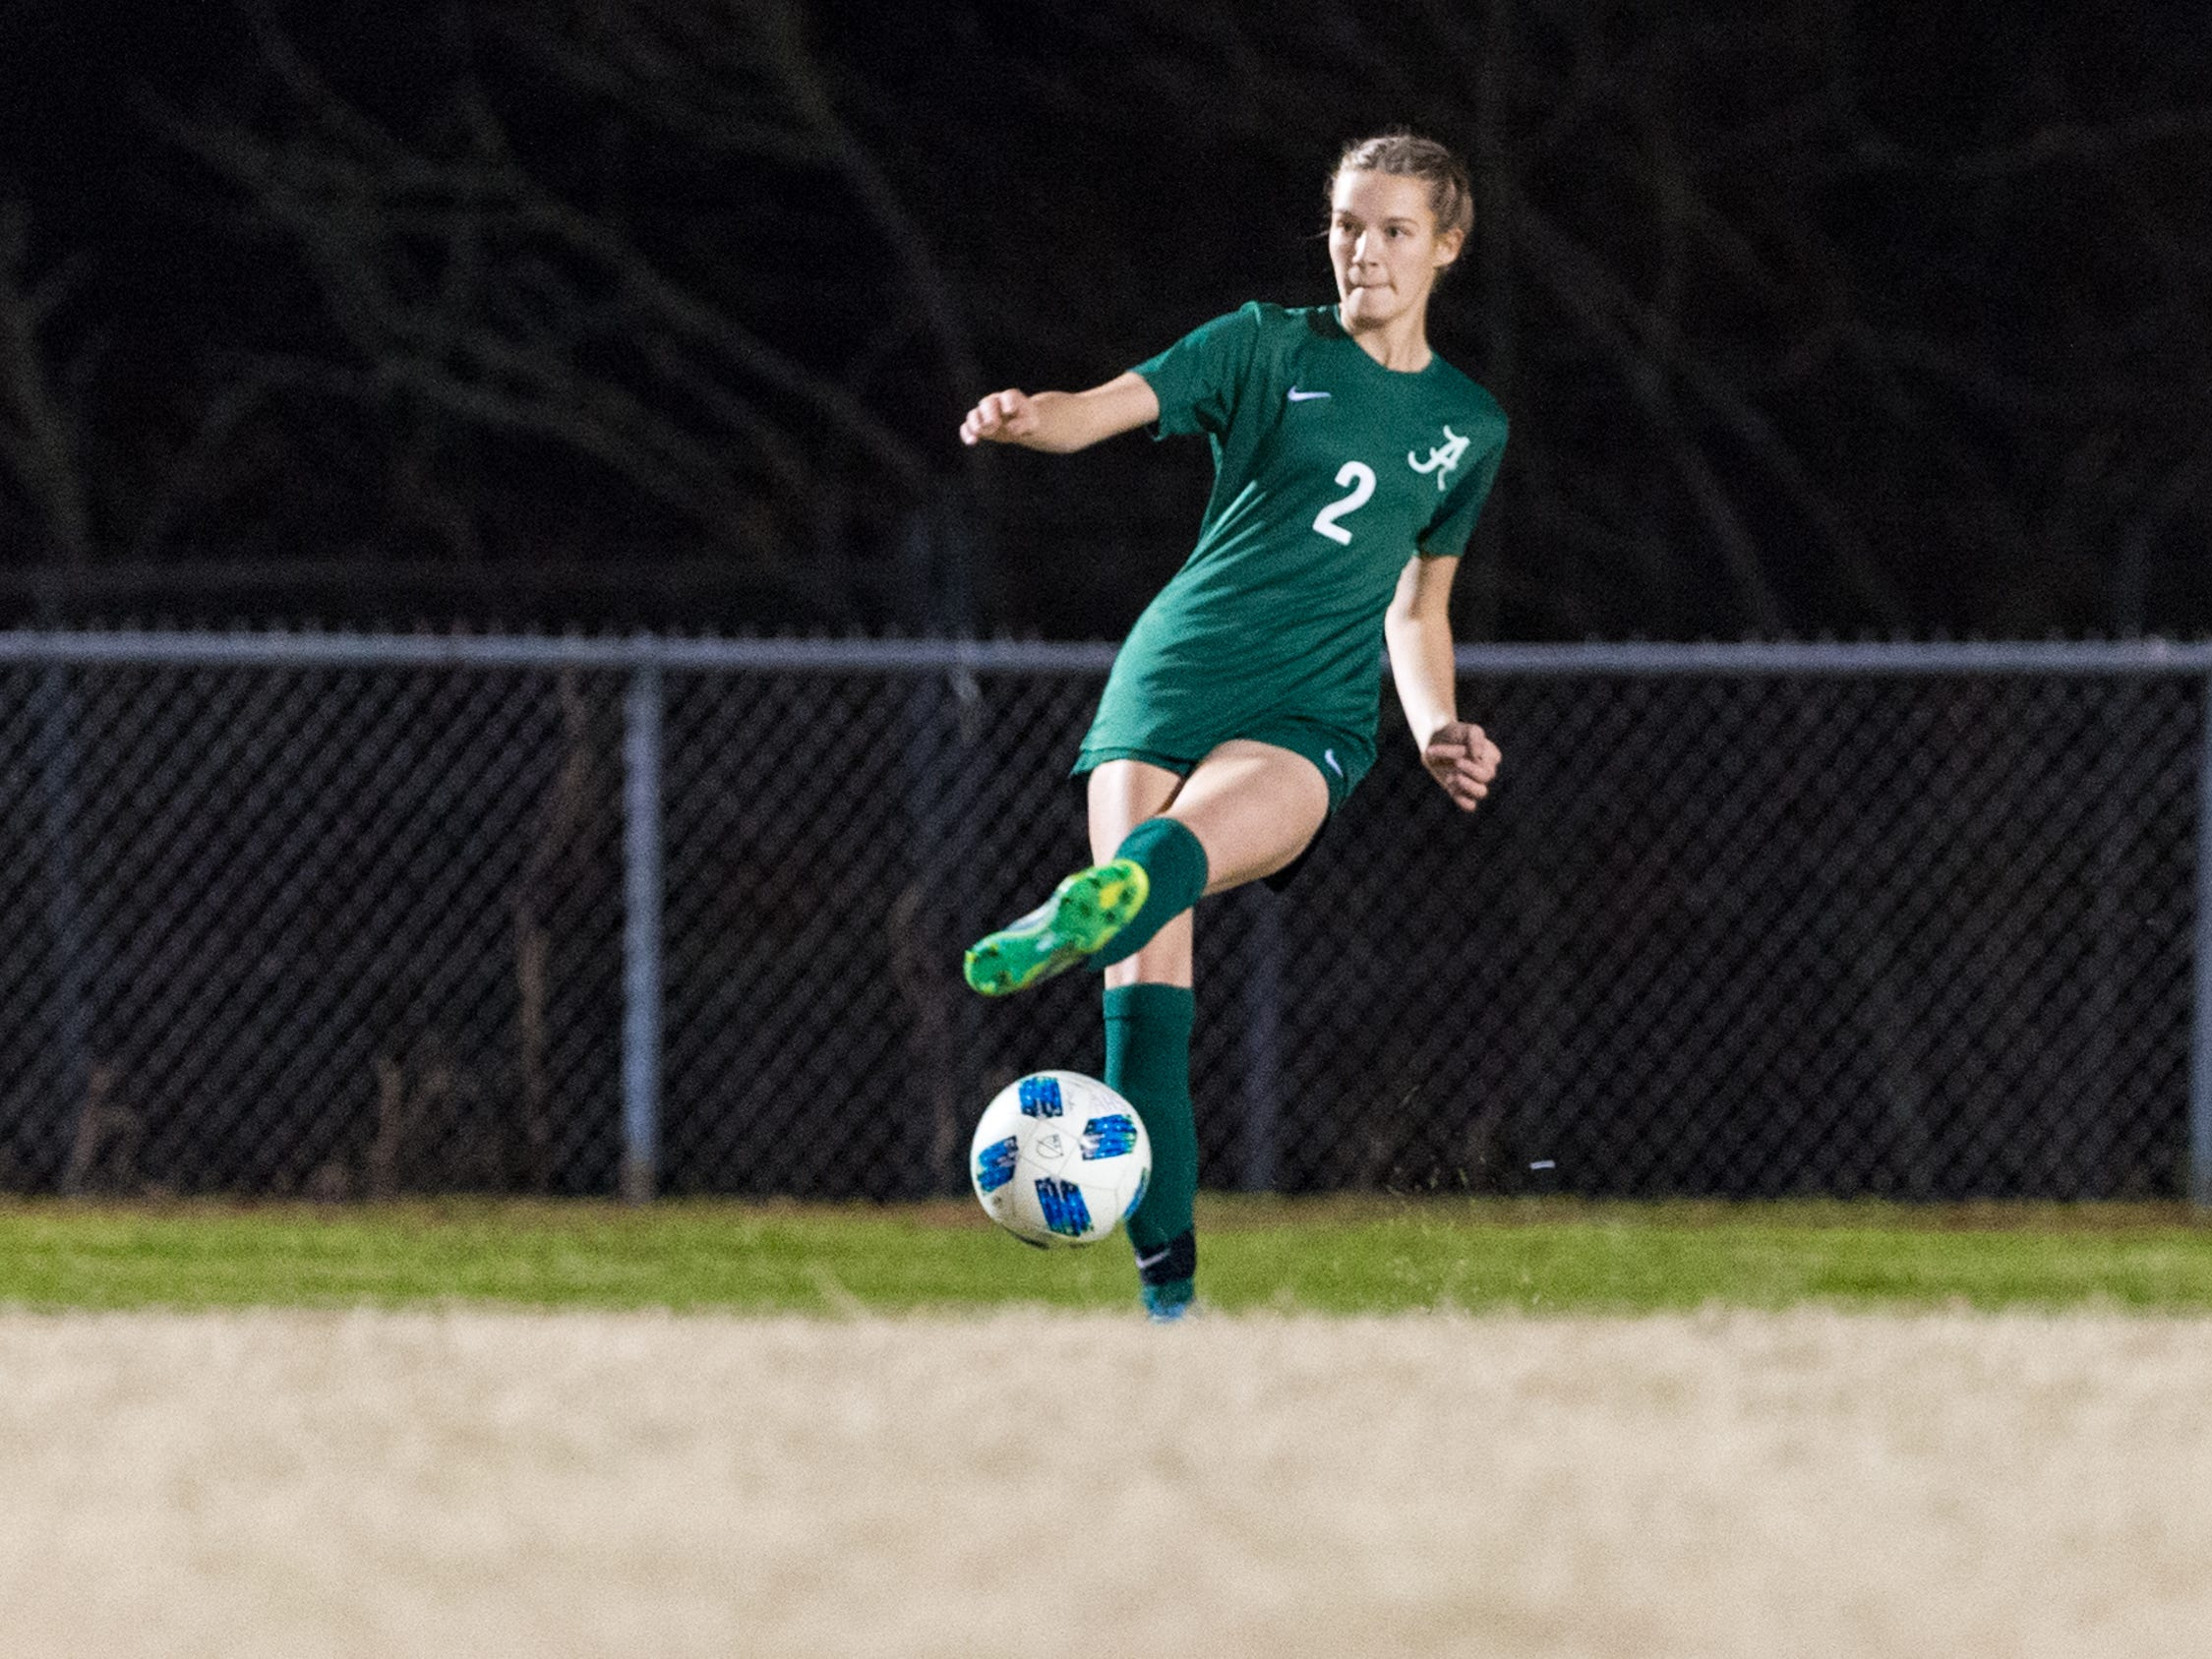 Kati Gillen passes the ball as Acadiana takes on STM girls soccer. Monday, Jan. 28, 2019.